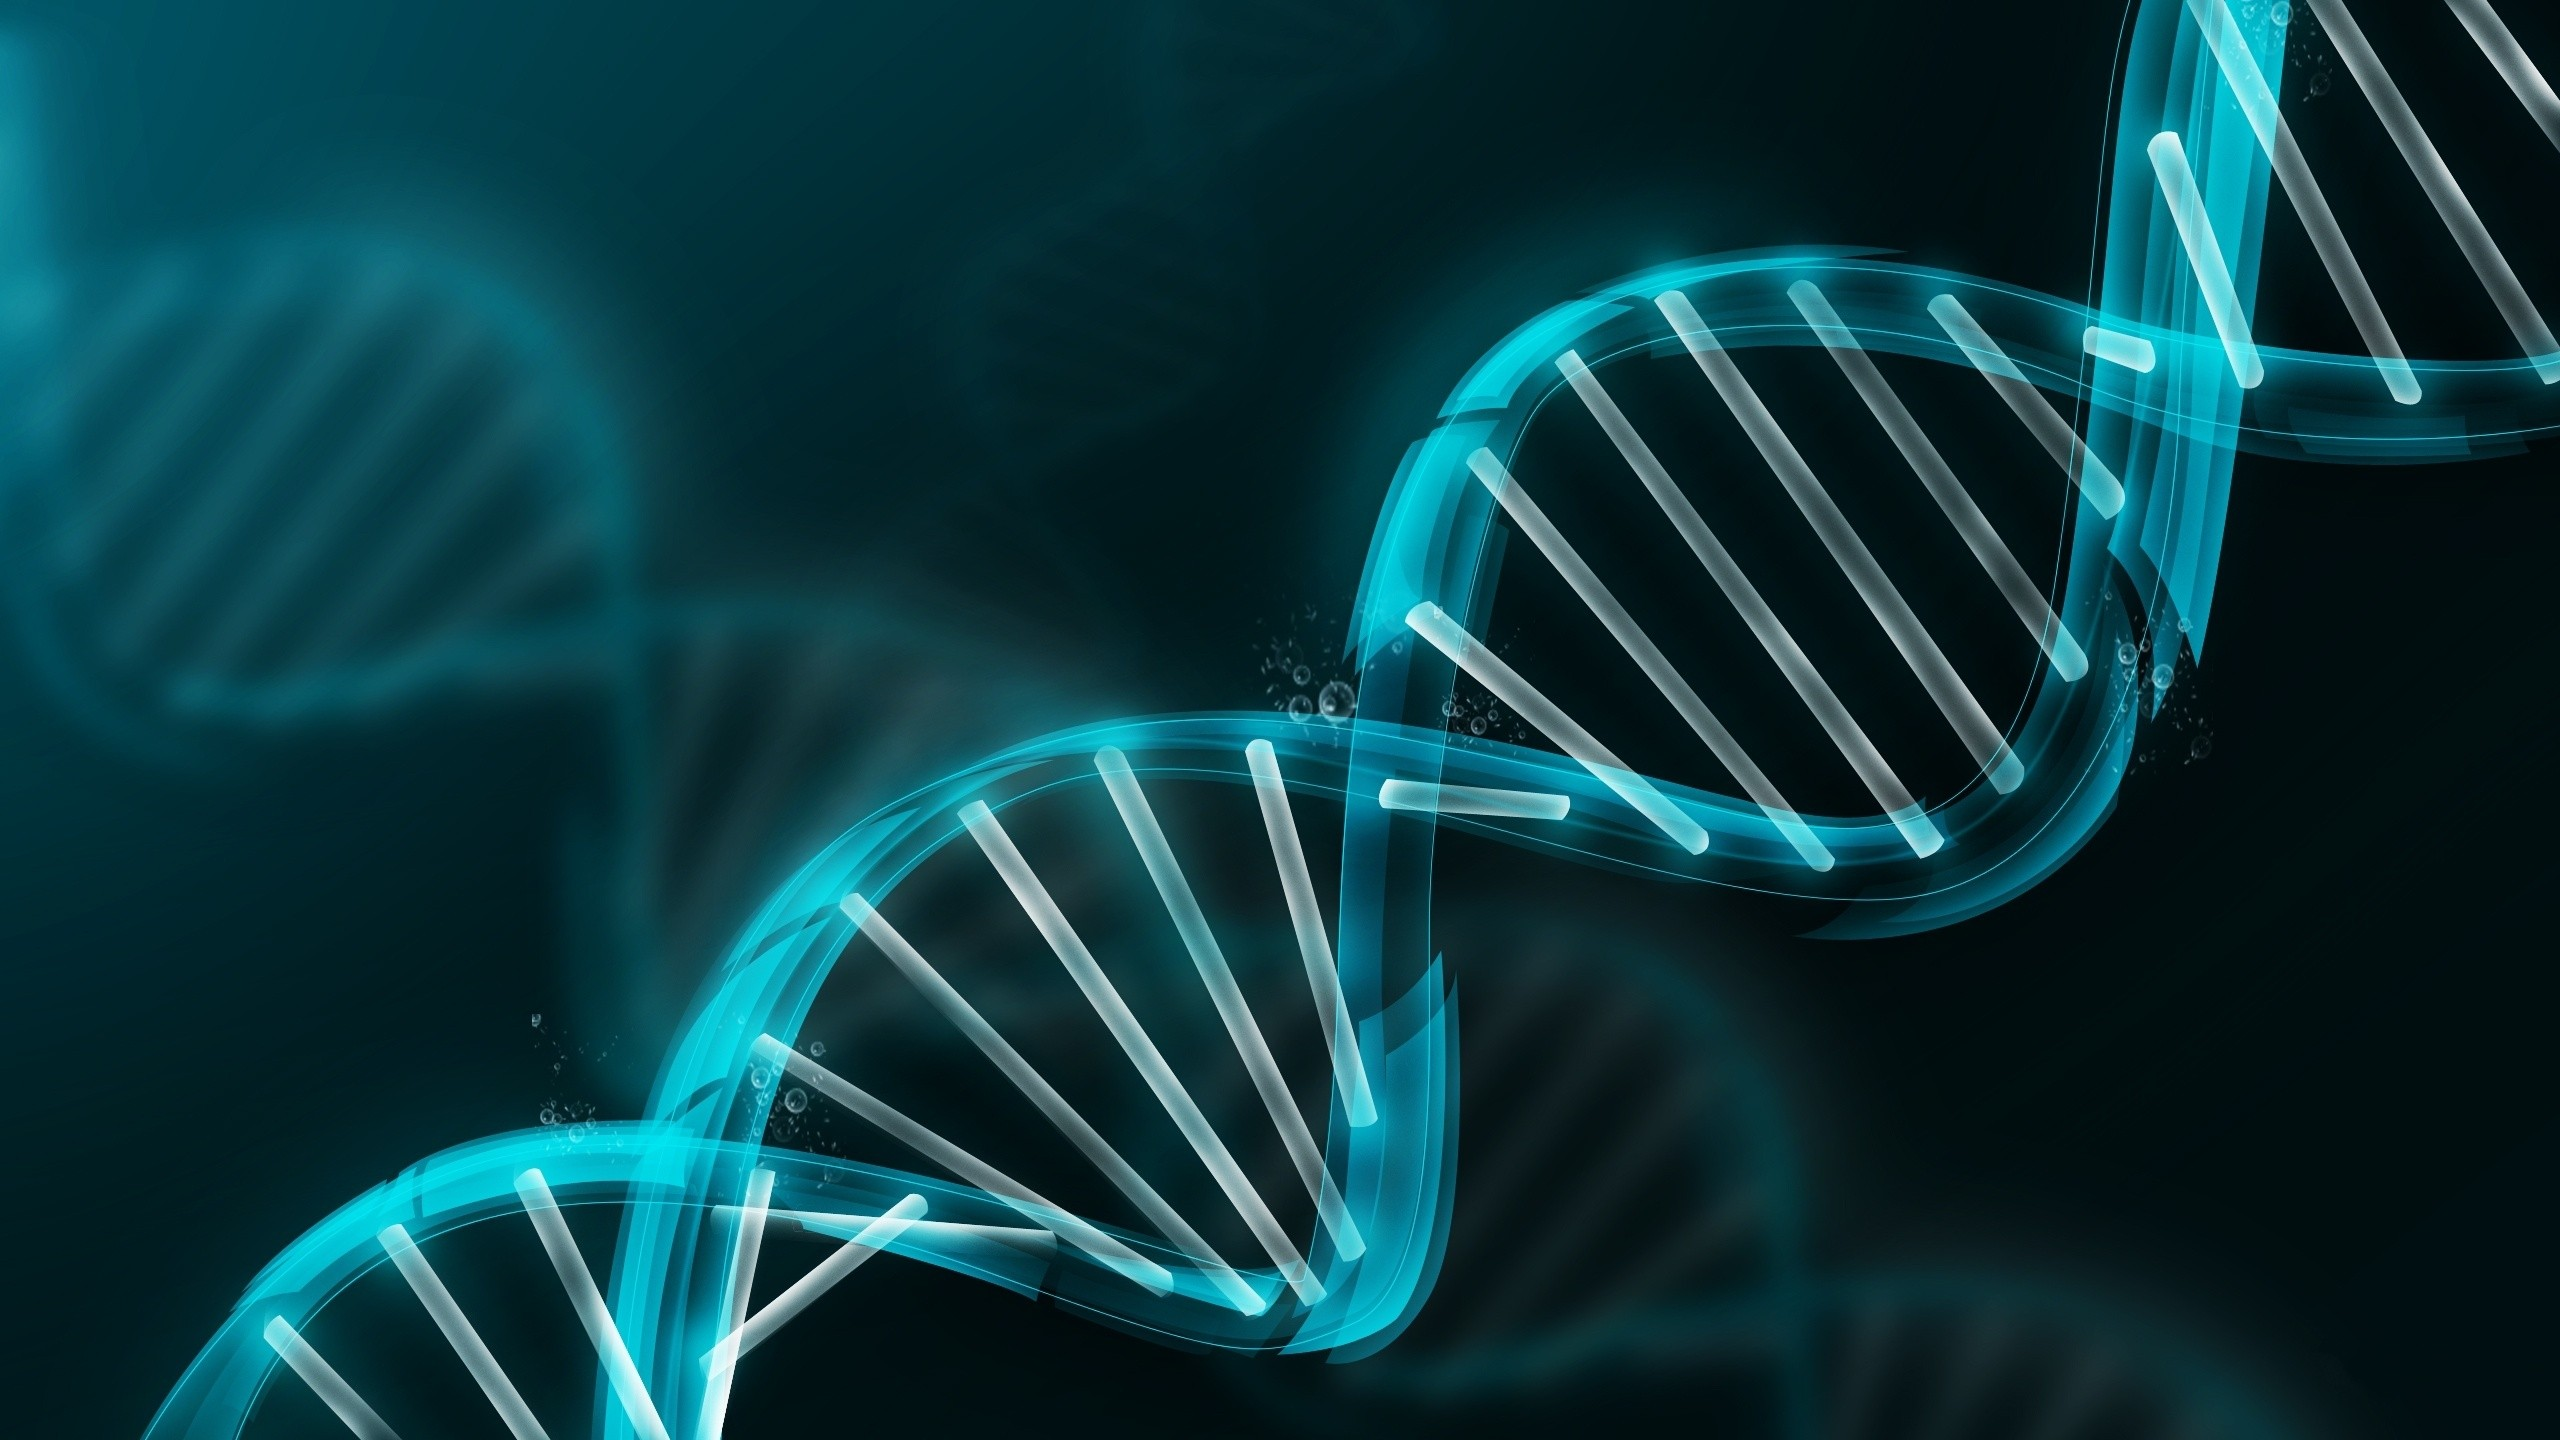 abstract molecule DNA DNA double helix Wallpapers 2560x1440